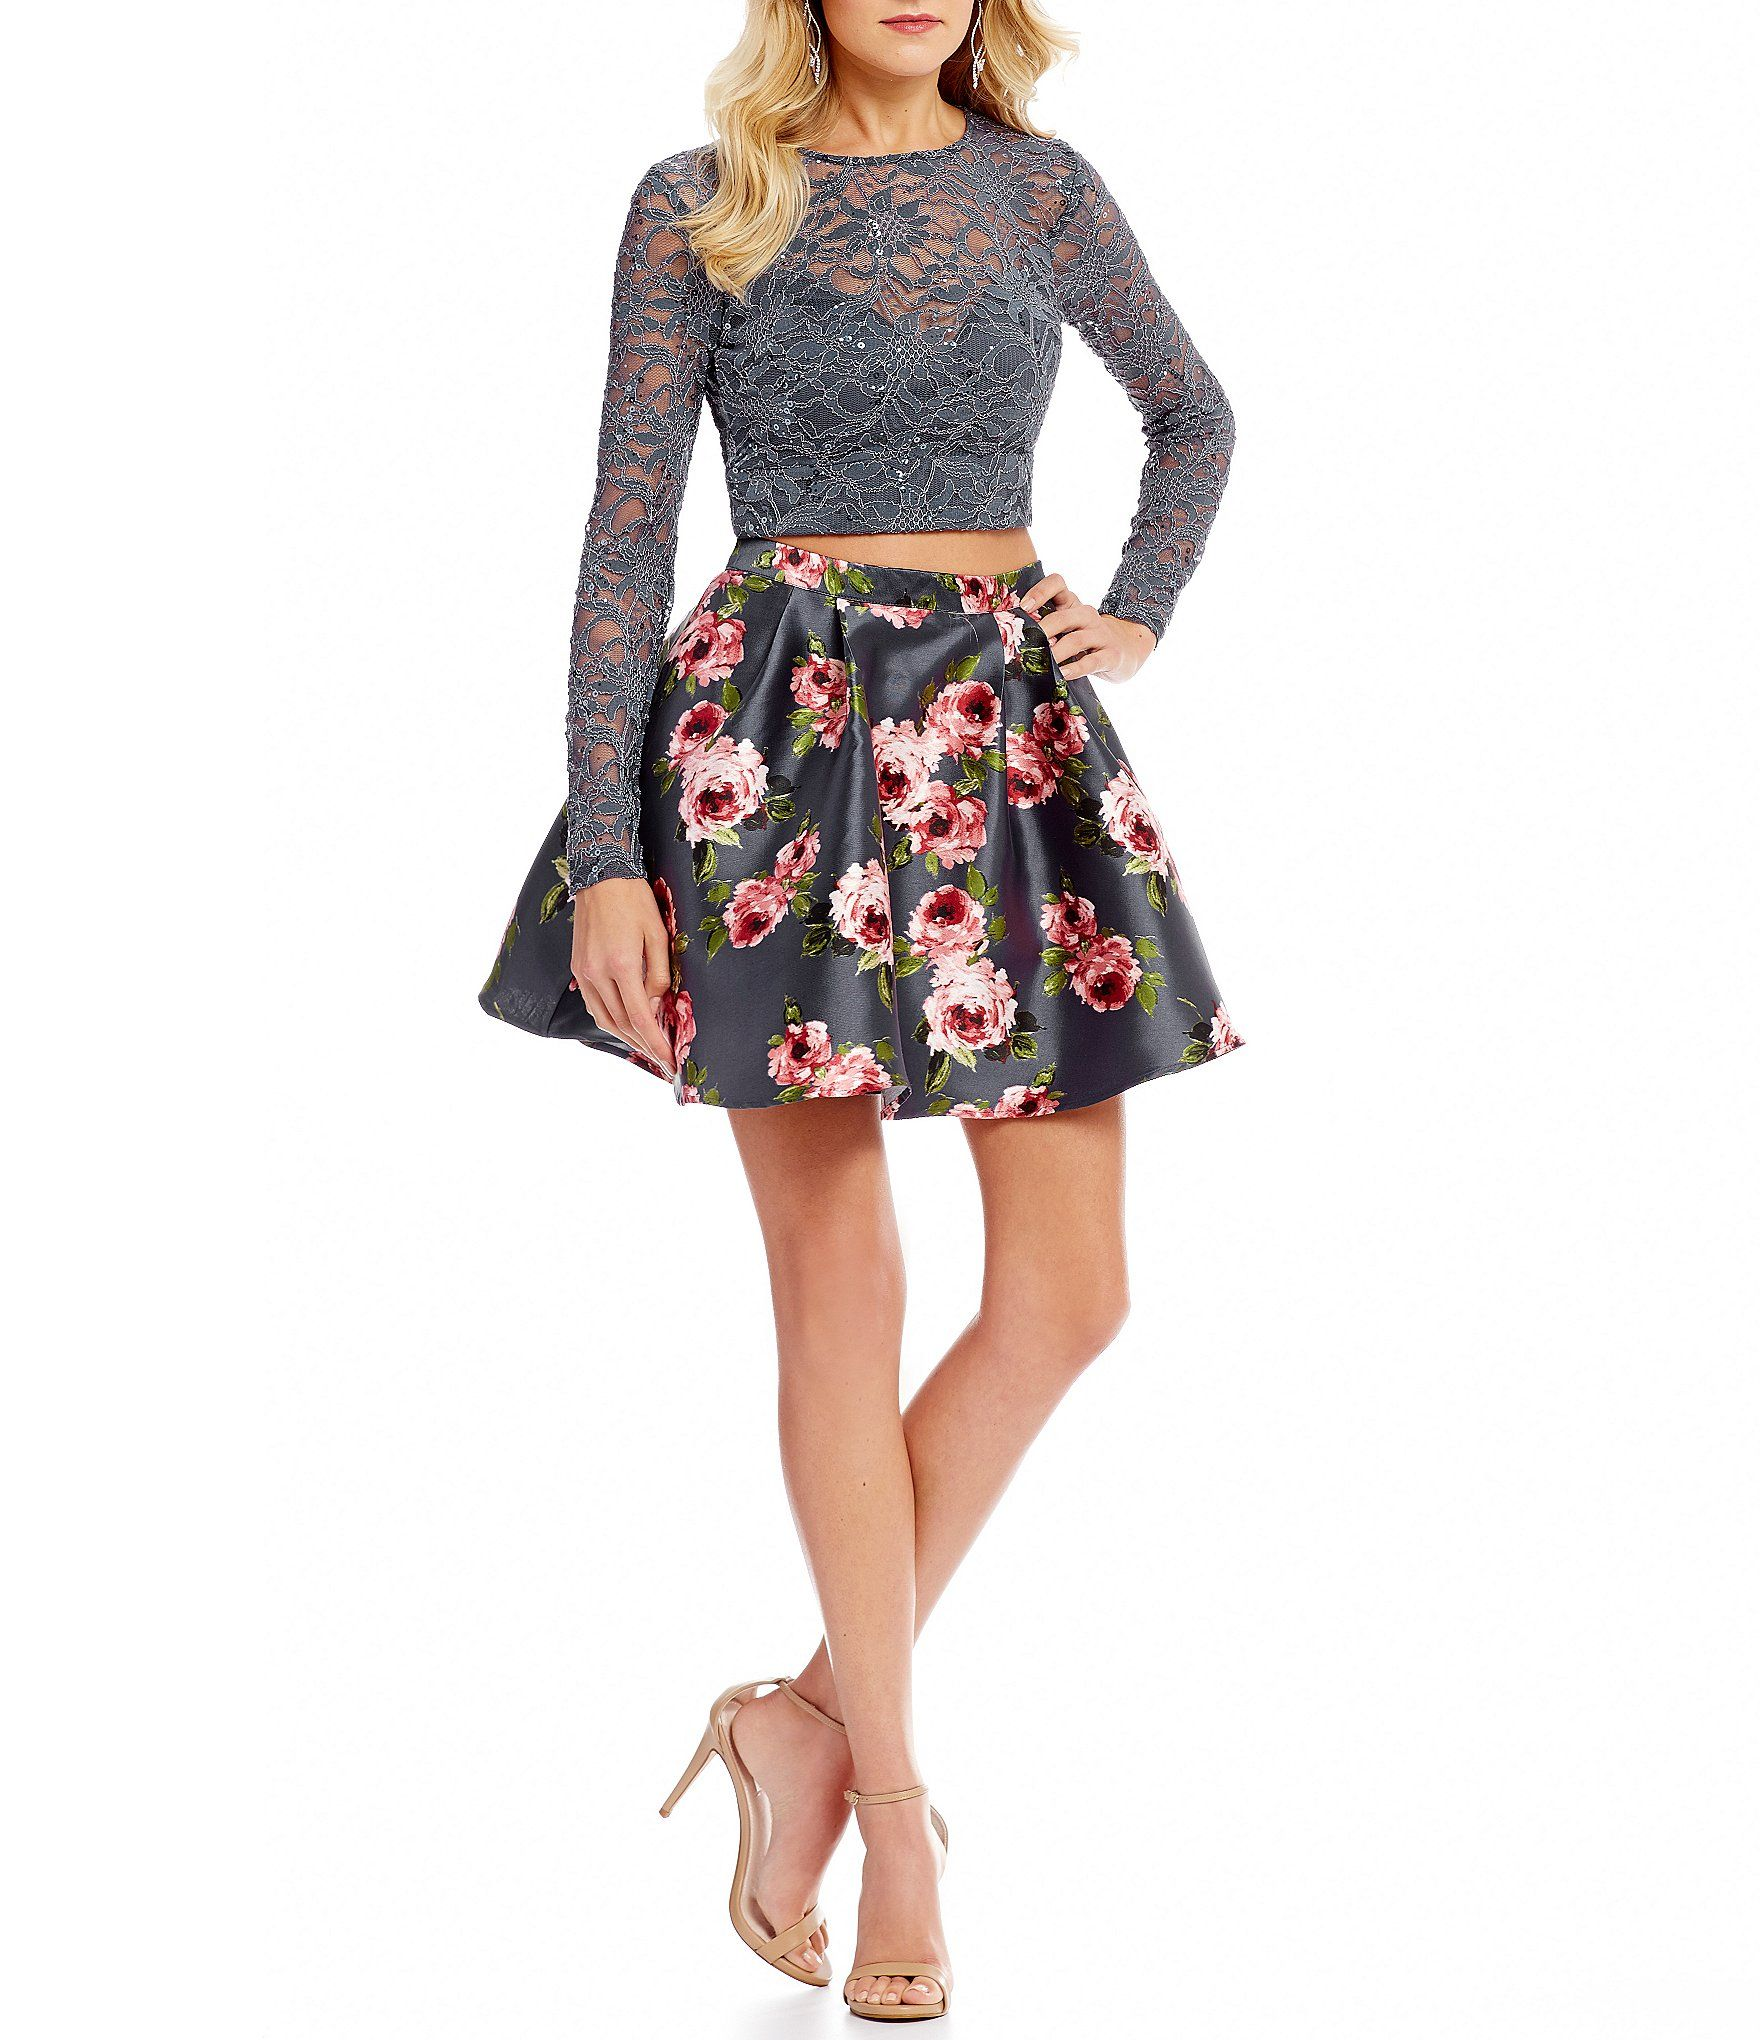 789e79cbbec5 B Darlin Long Sleeve Top with Floral Print Skirt TwoPiece Dress #Dillards